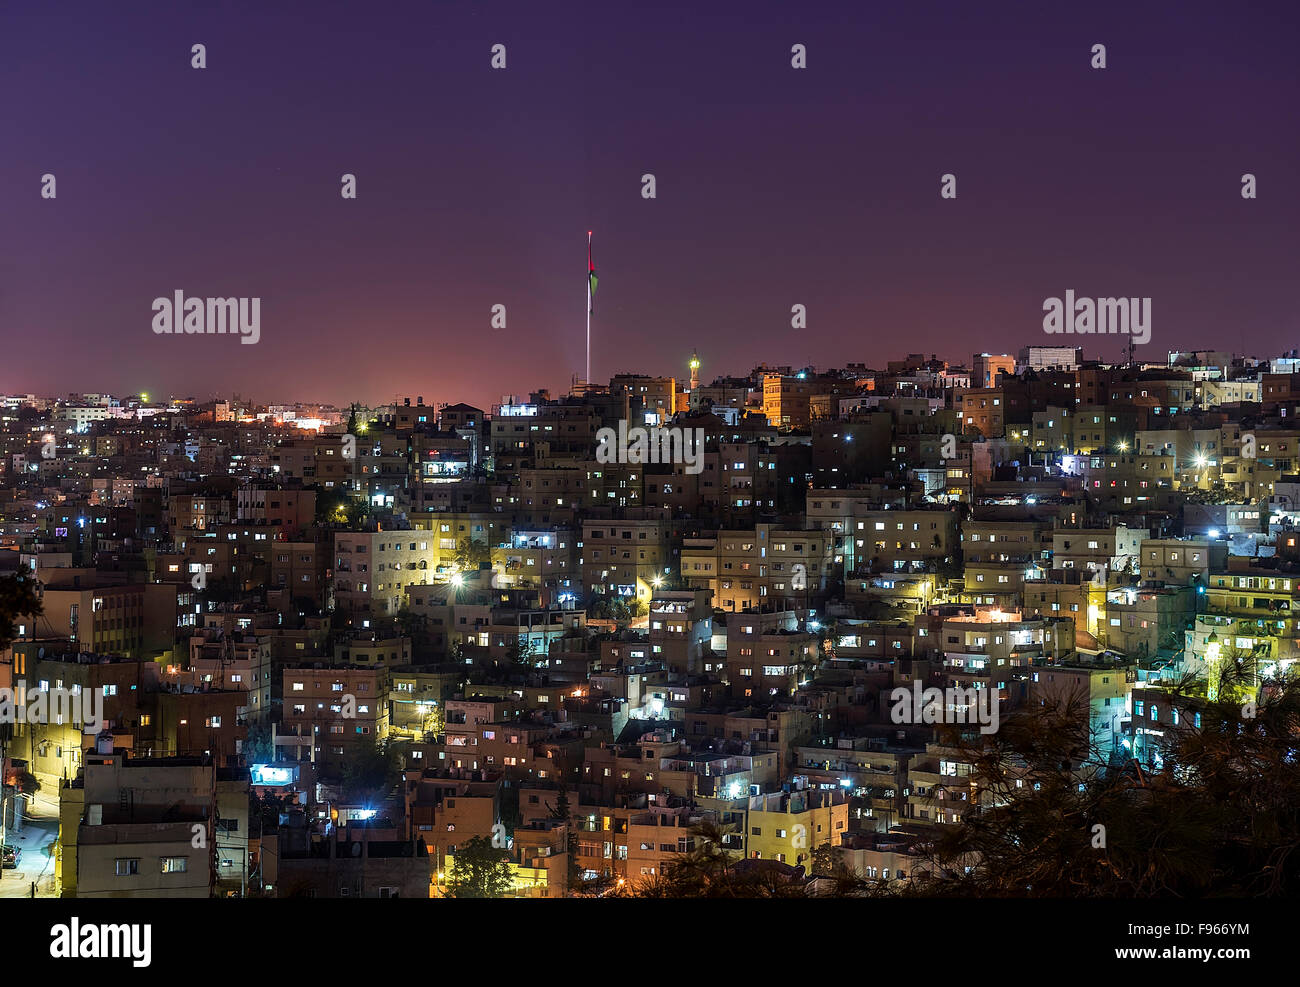 Amman par nuit Photo Stock